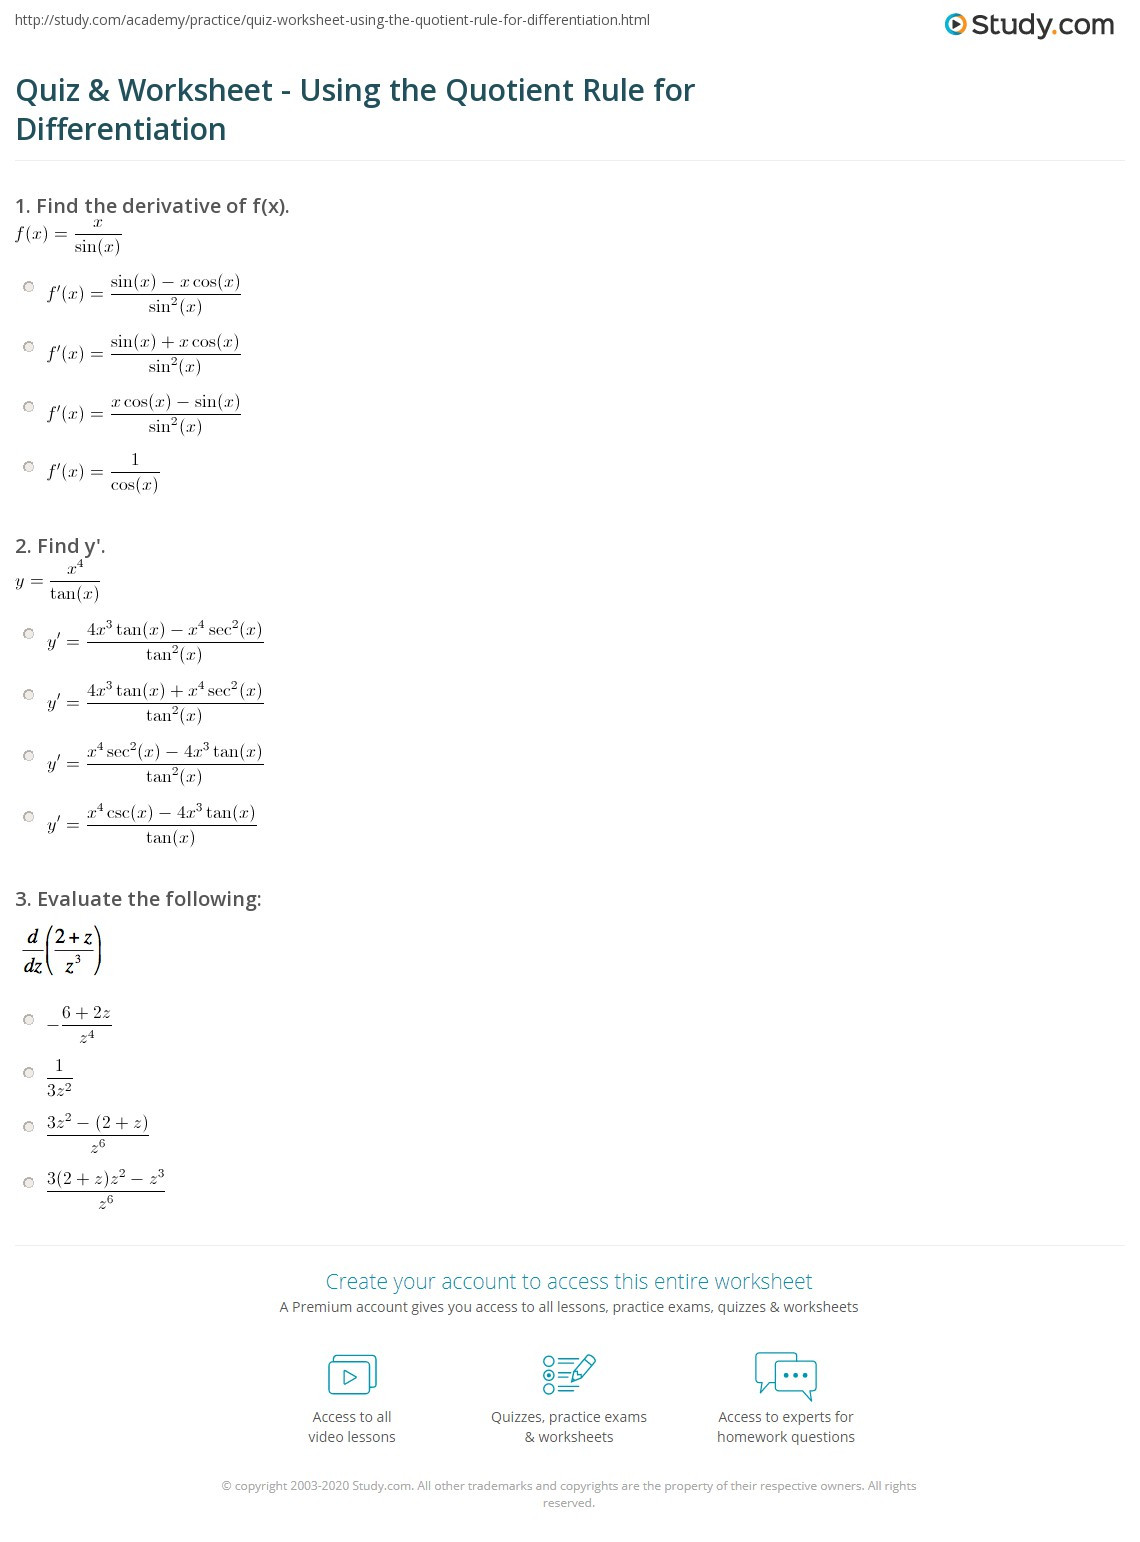 Product and Quotient Rule Worksheet Quiz & Worksheet Using the Quotient Rule for